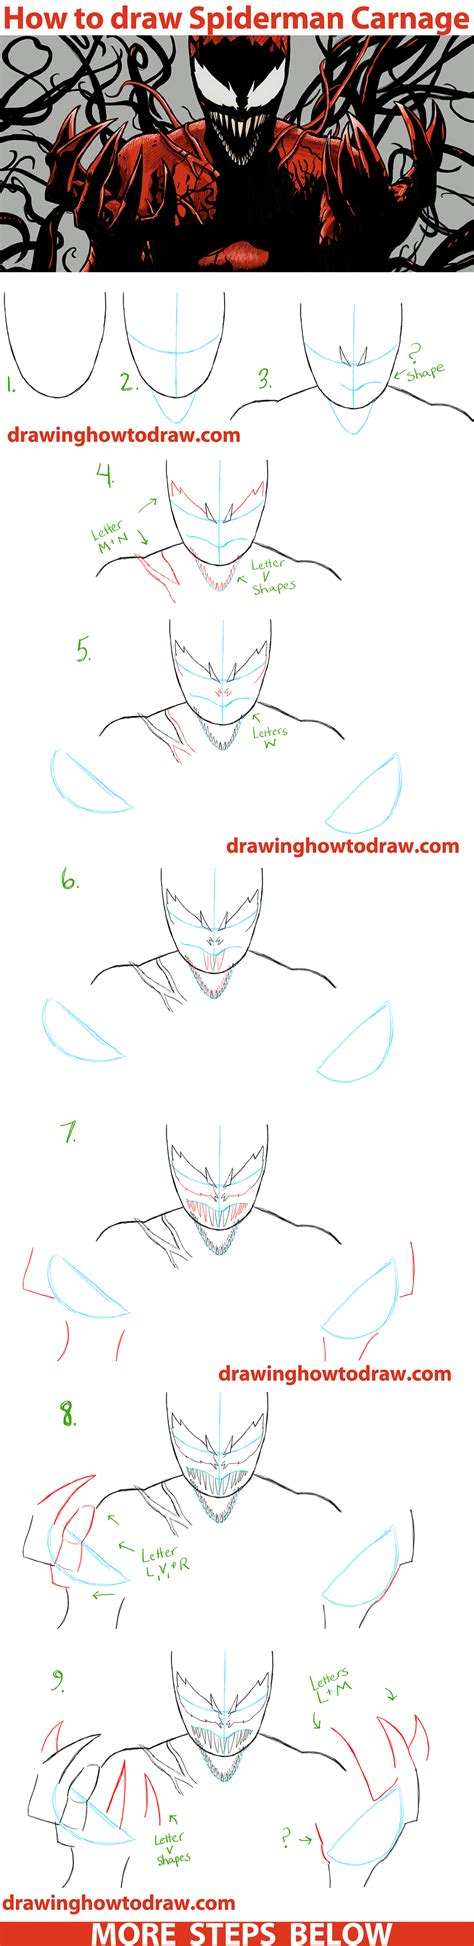 learn to draw marvel s spider learn to draw your favorite spider characters including spider the green goblin the vulture and more licensed learn to draw books how to draw carnage from marvel comics step by